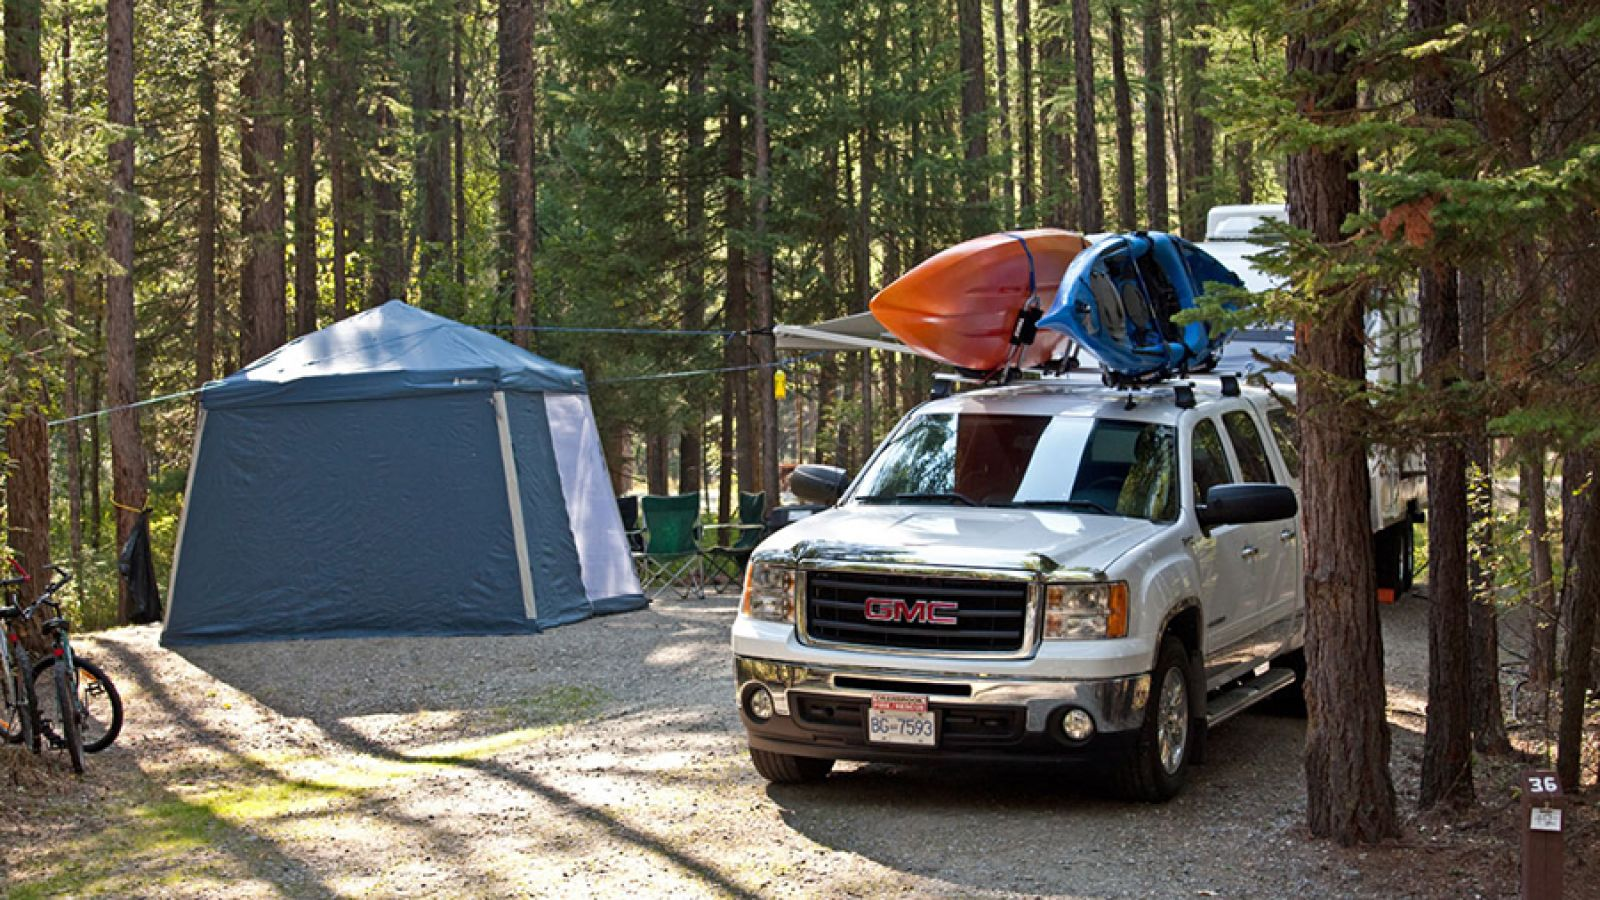 A 35-site campground.